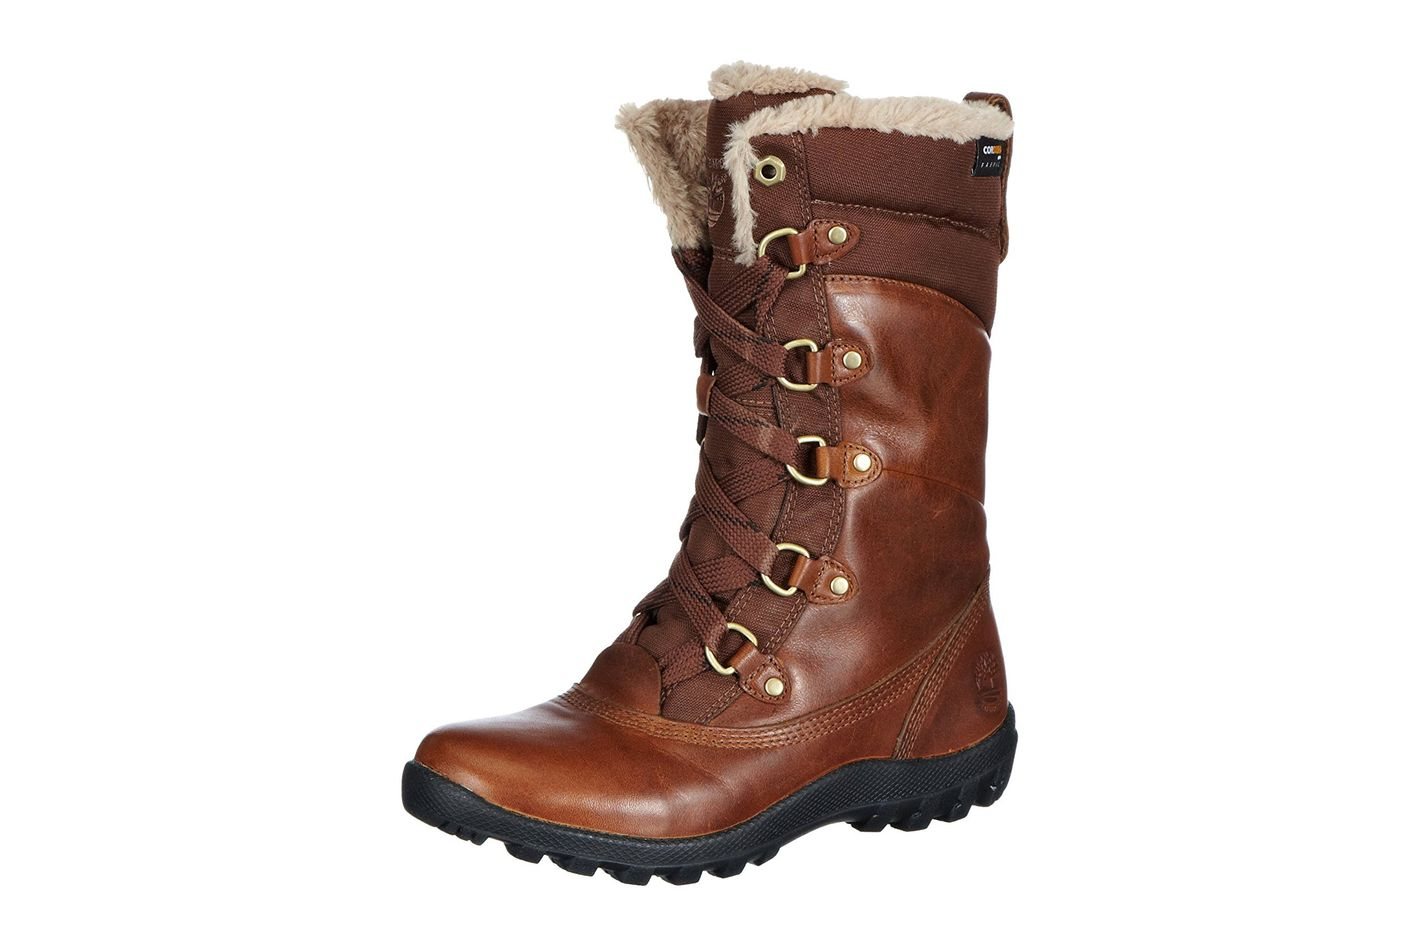 35597e8793ee Best leather snow boot. Timberland Women s MT Hope Mid Waterproof Boot